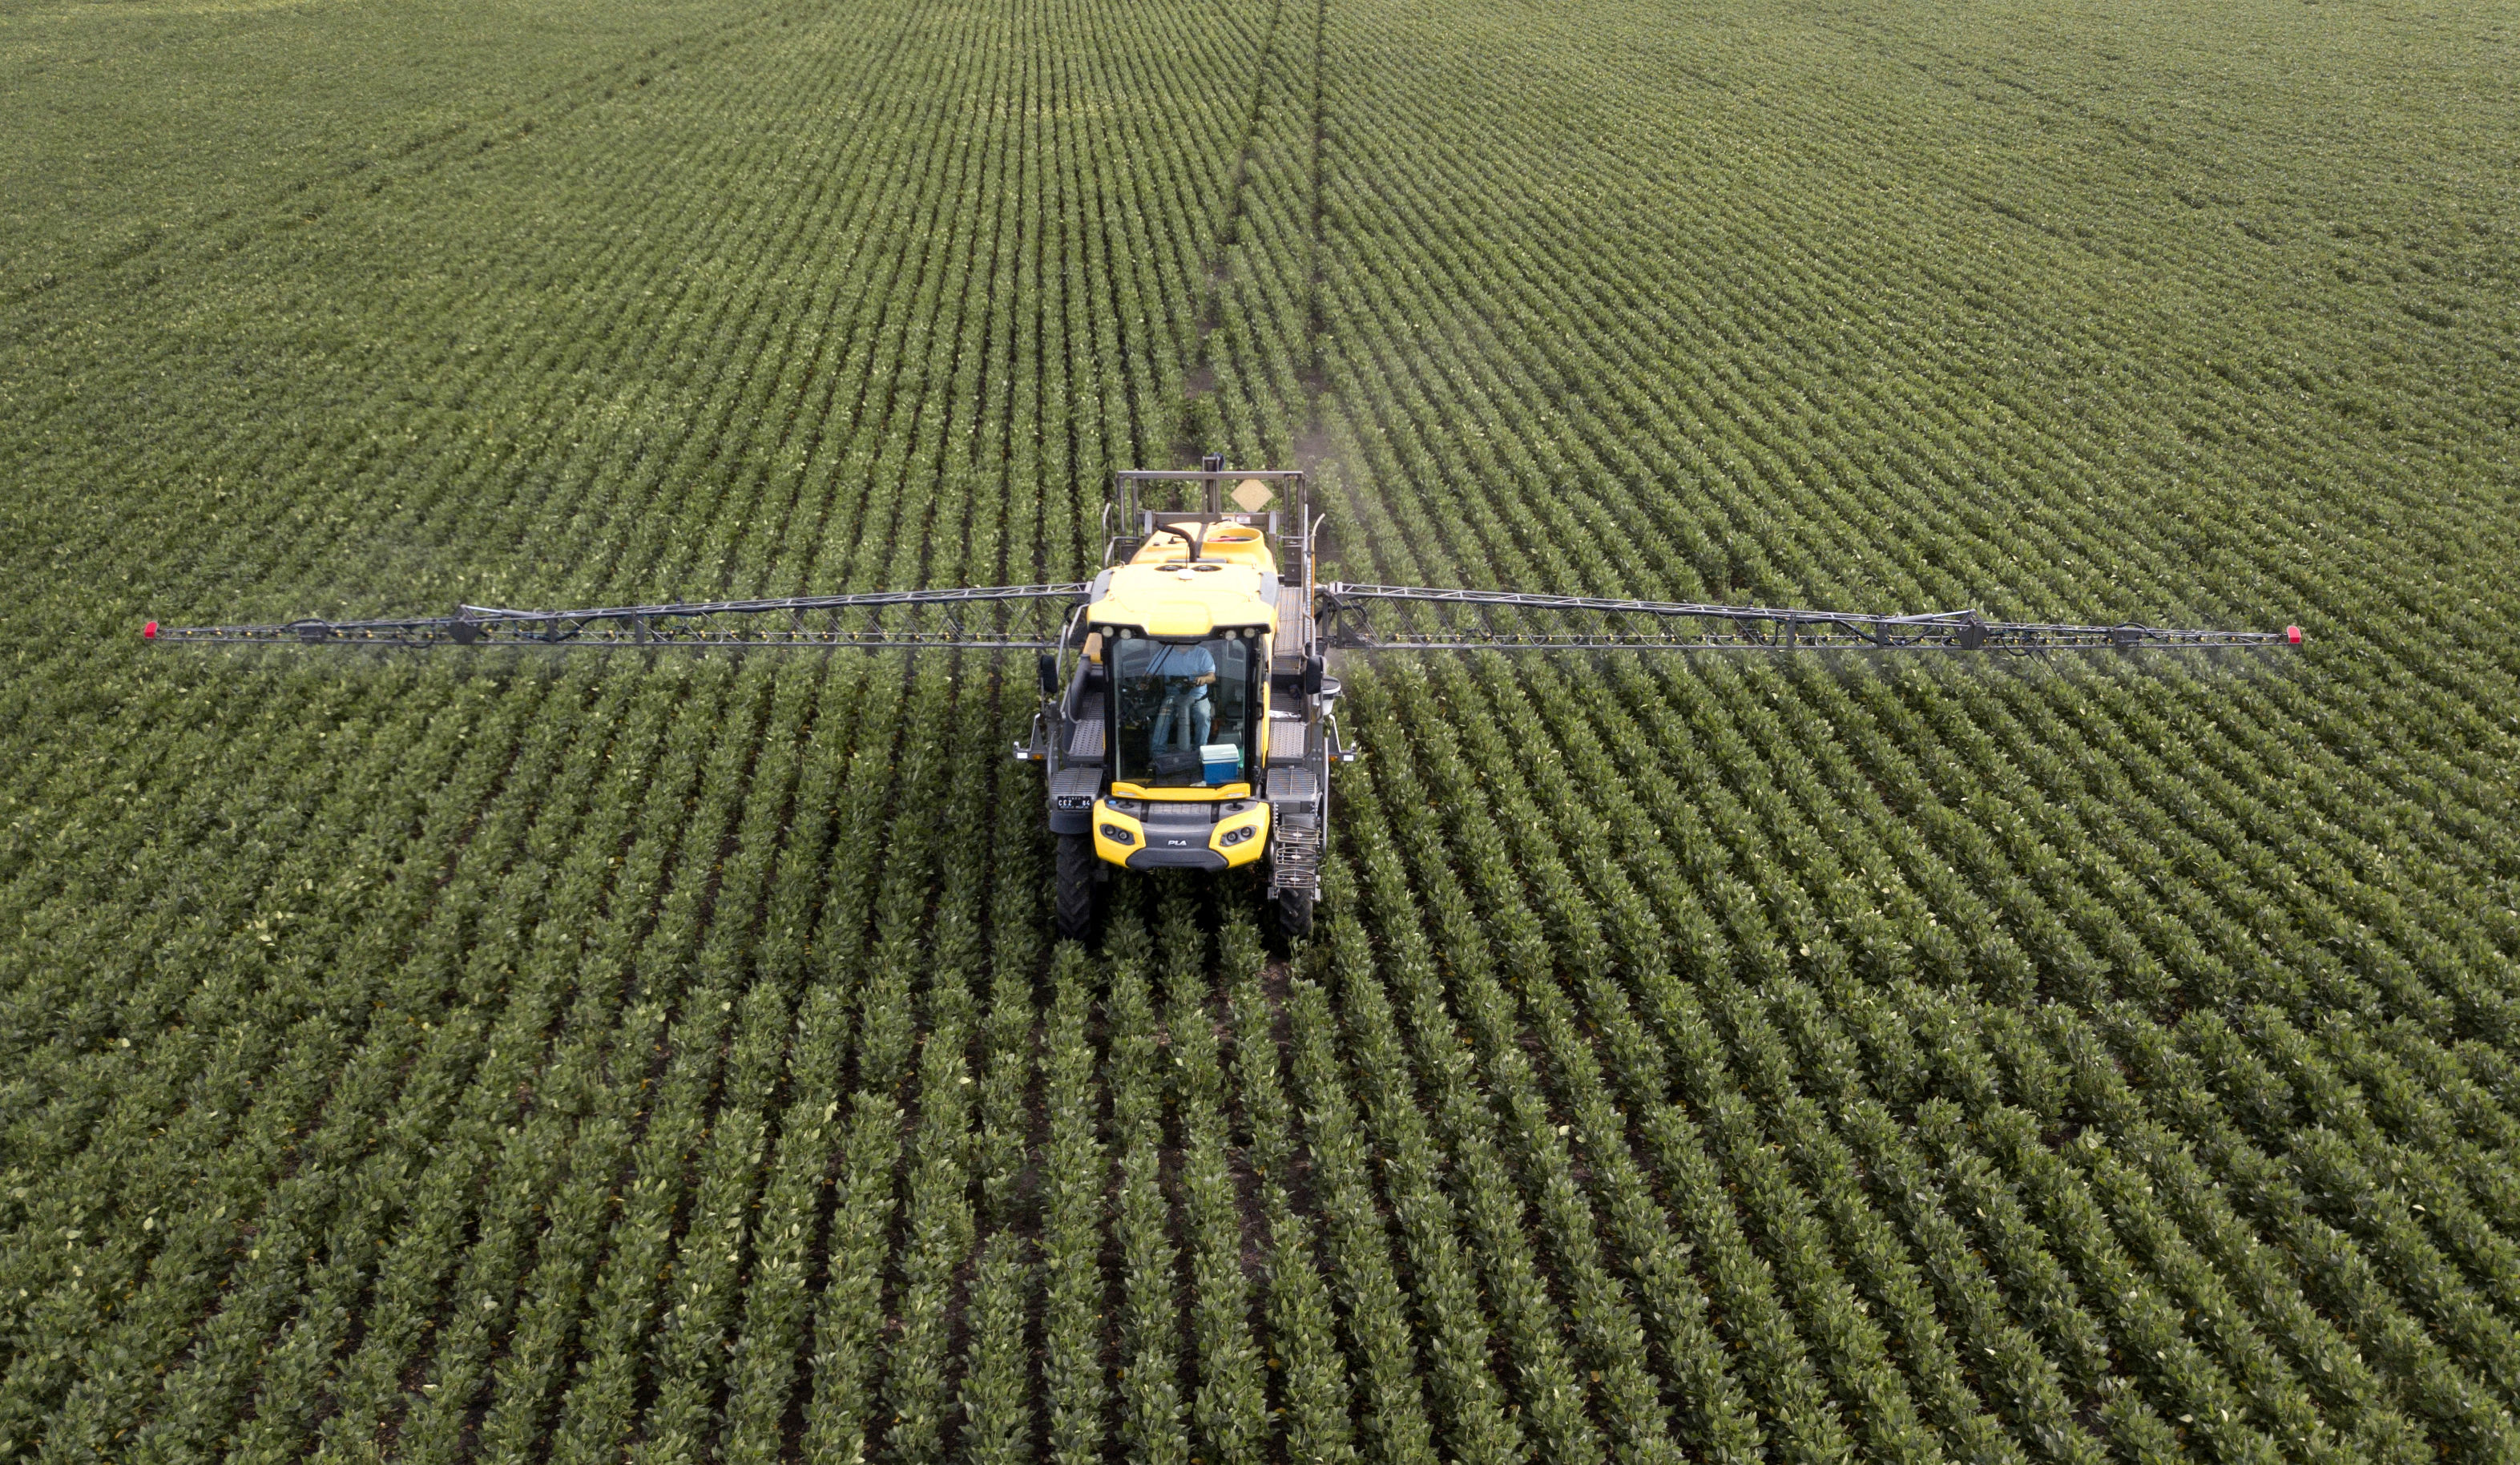 A soybean field is fumigated near Urdinarrain, Entre Rios province, Argentina, on February 8, 2018. Soybean fields in Argentina are often fumigated with glyphosate, a herbicide which is probably carcinogenic according to the World Health Organization (WHO), but which is needed to maintain crops of transgenic seeds. The first trial for the possible effects of Round Up -Monsanto's polemic herbicide containing gliphosate- starts on July 9 in the US. / AFP PHOTO / IVAN PISARENKO